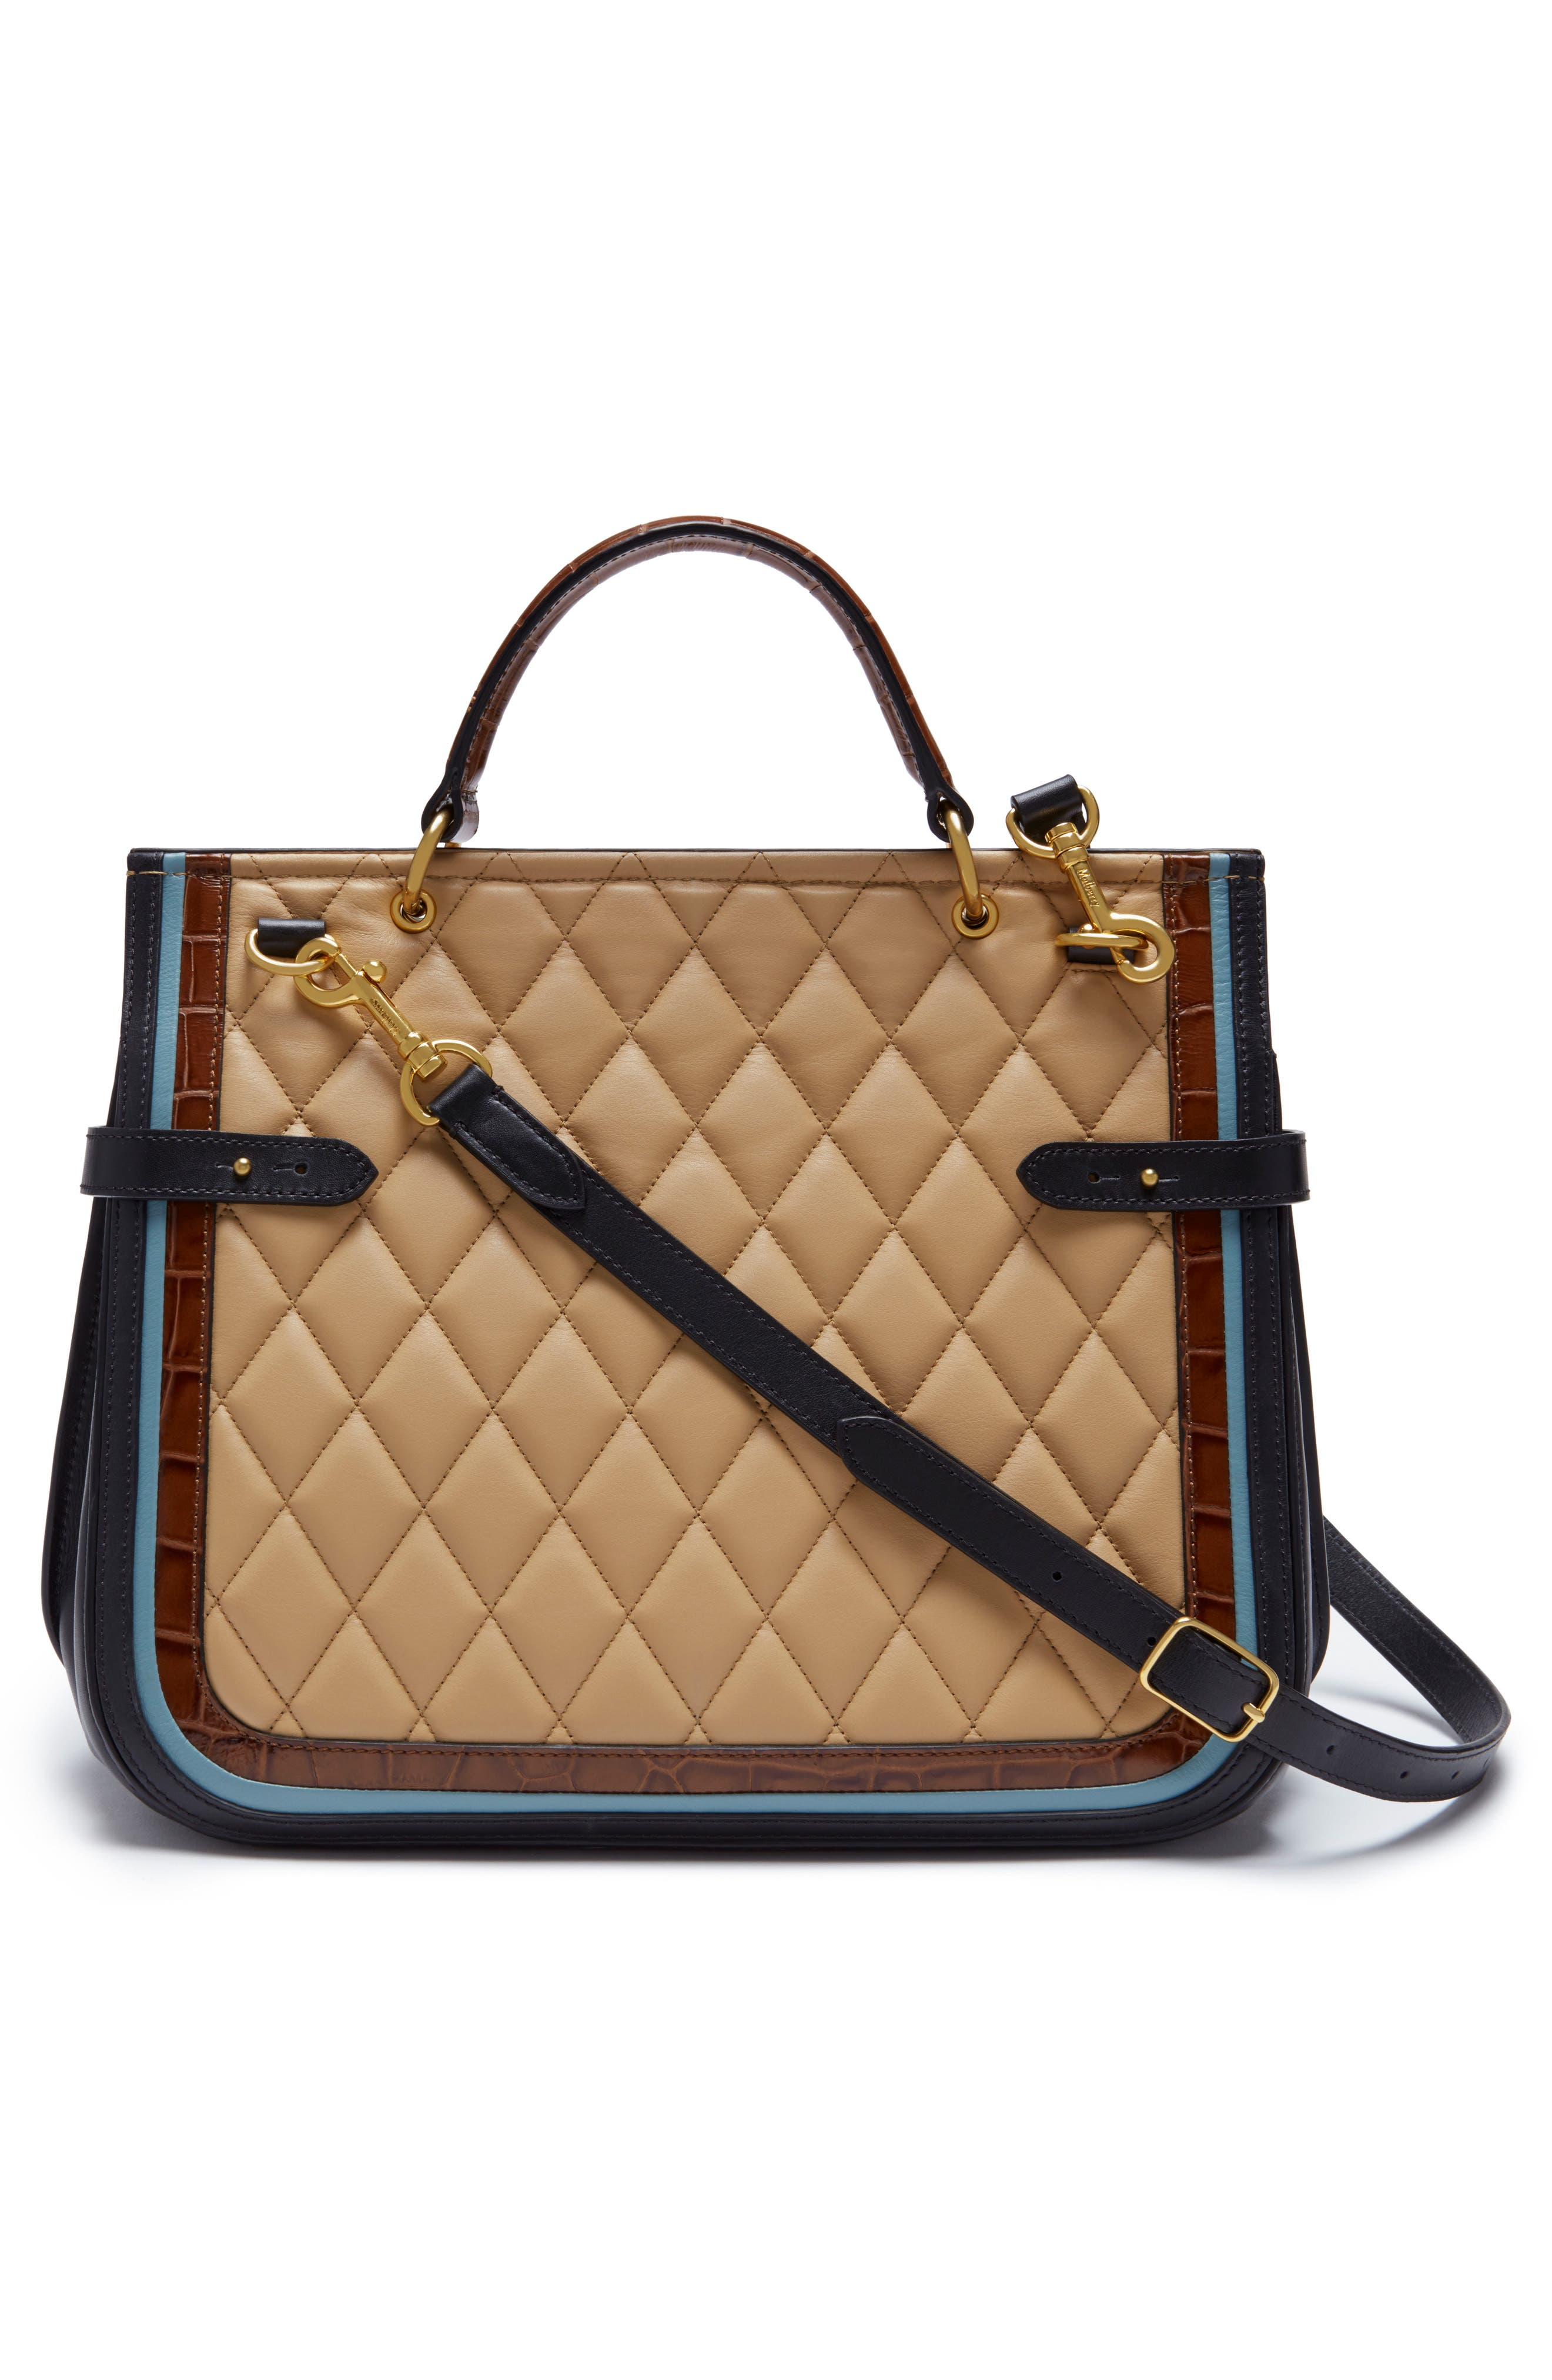 Amberley Quilted Calfskin Leather Satchel,                             Alternate thumbnail 2, color,                             Black/ Tan/ Multi